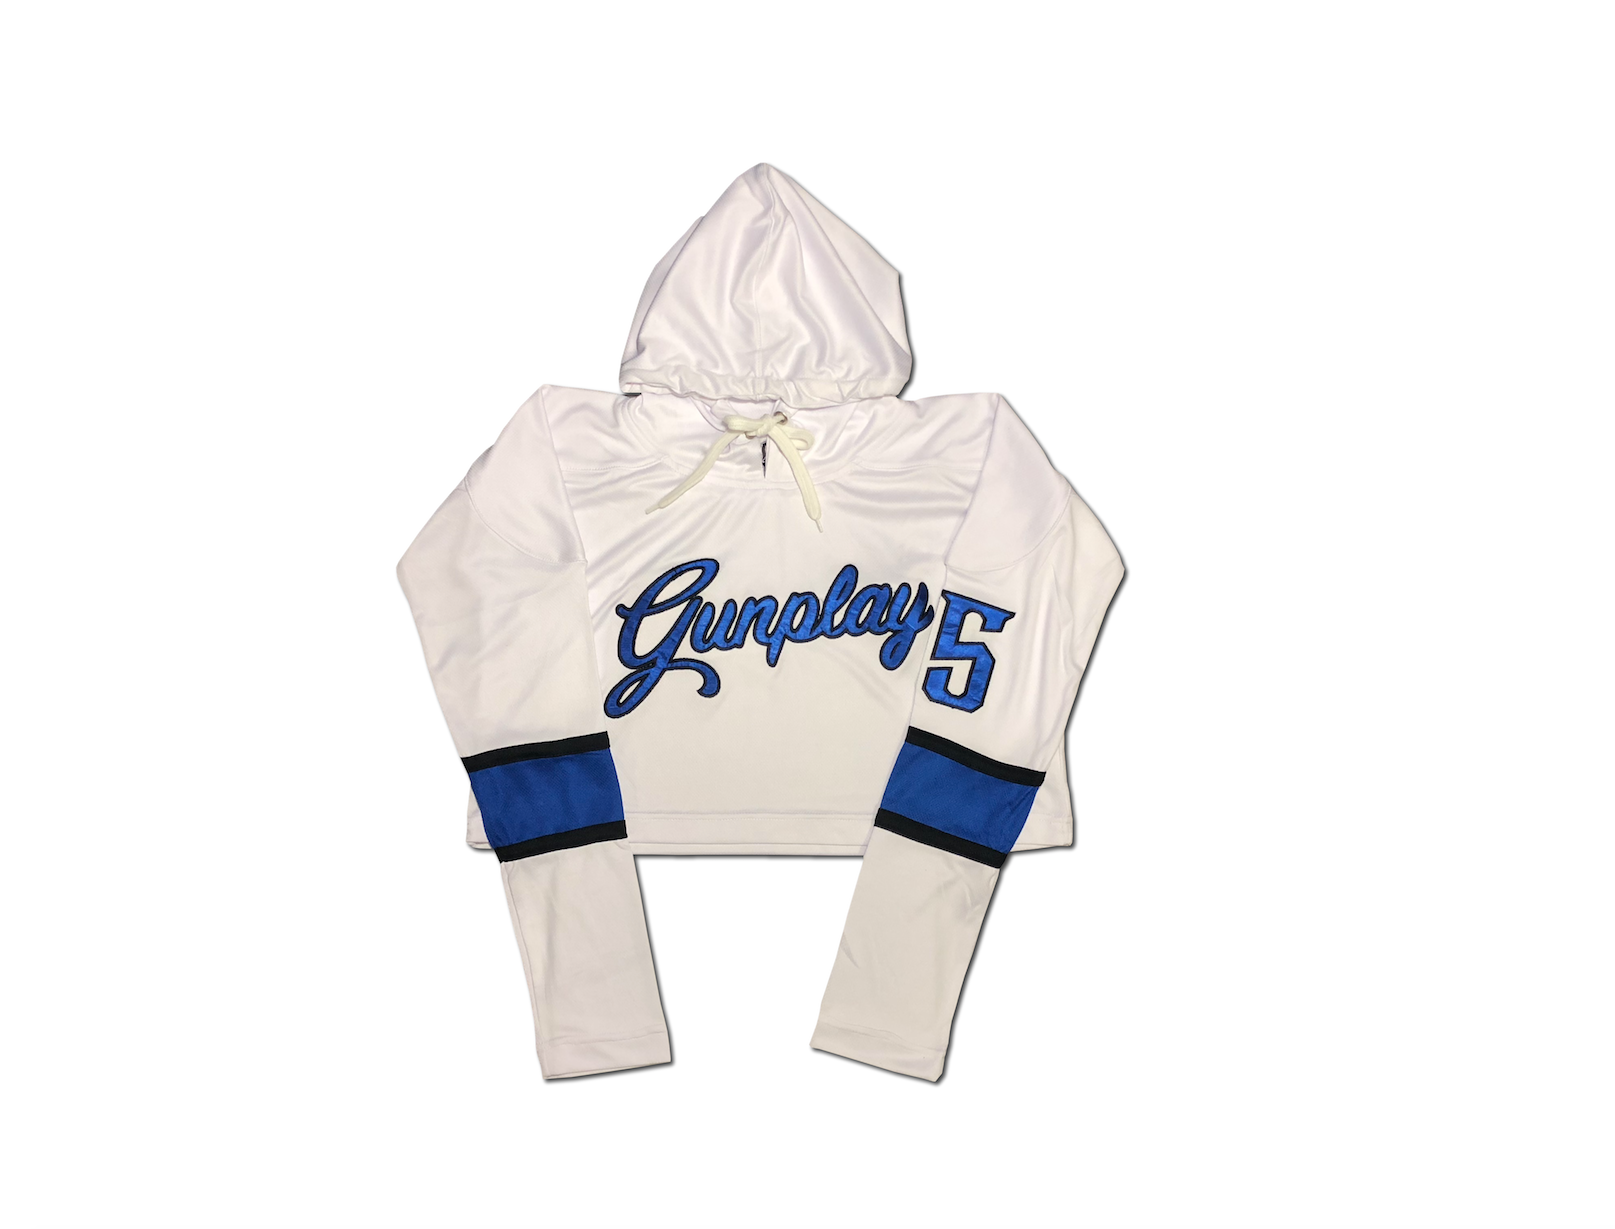 Royal Crop Hockey Jersey - White/Royal Blue/Black